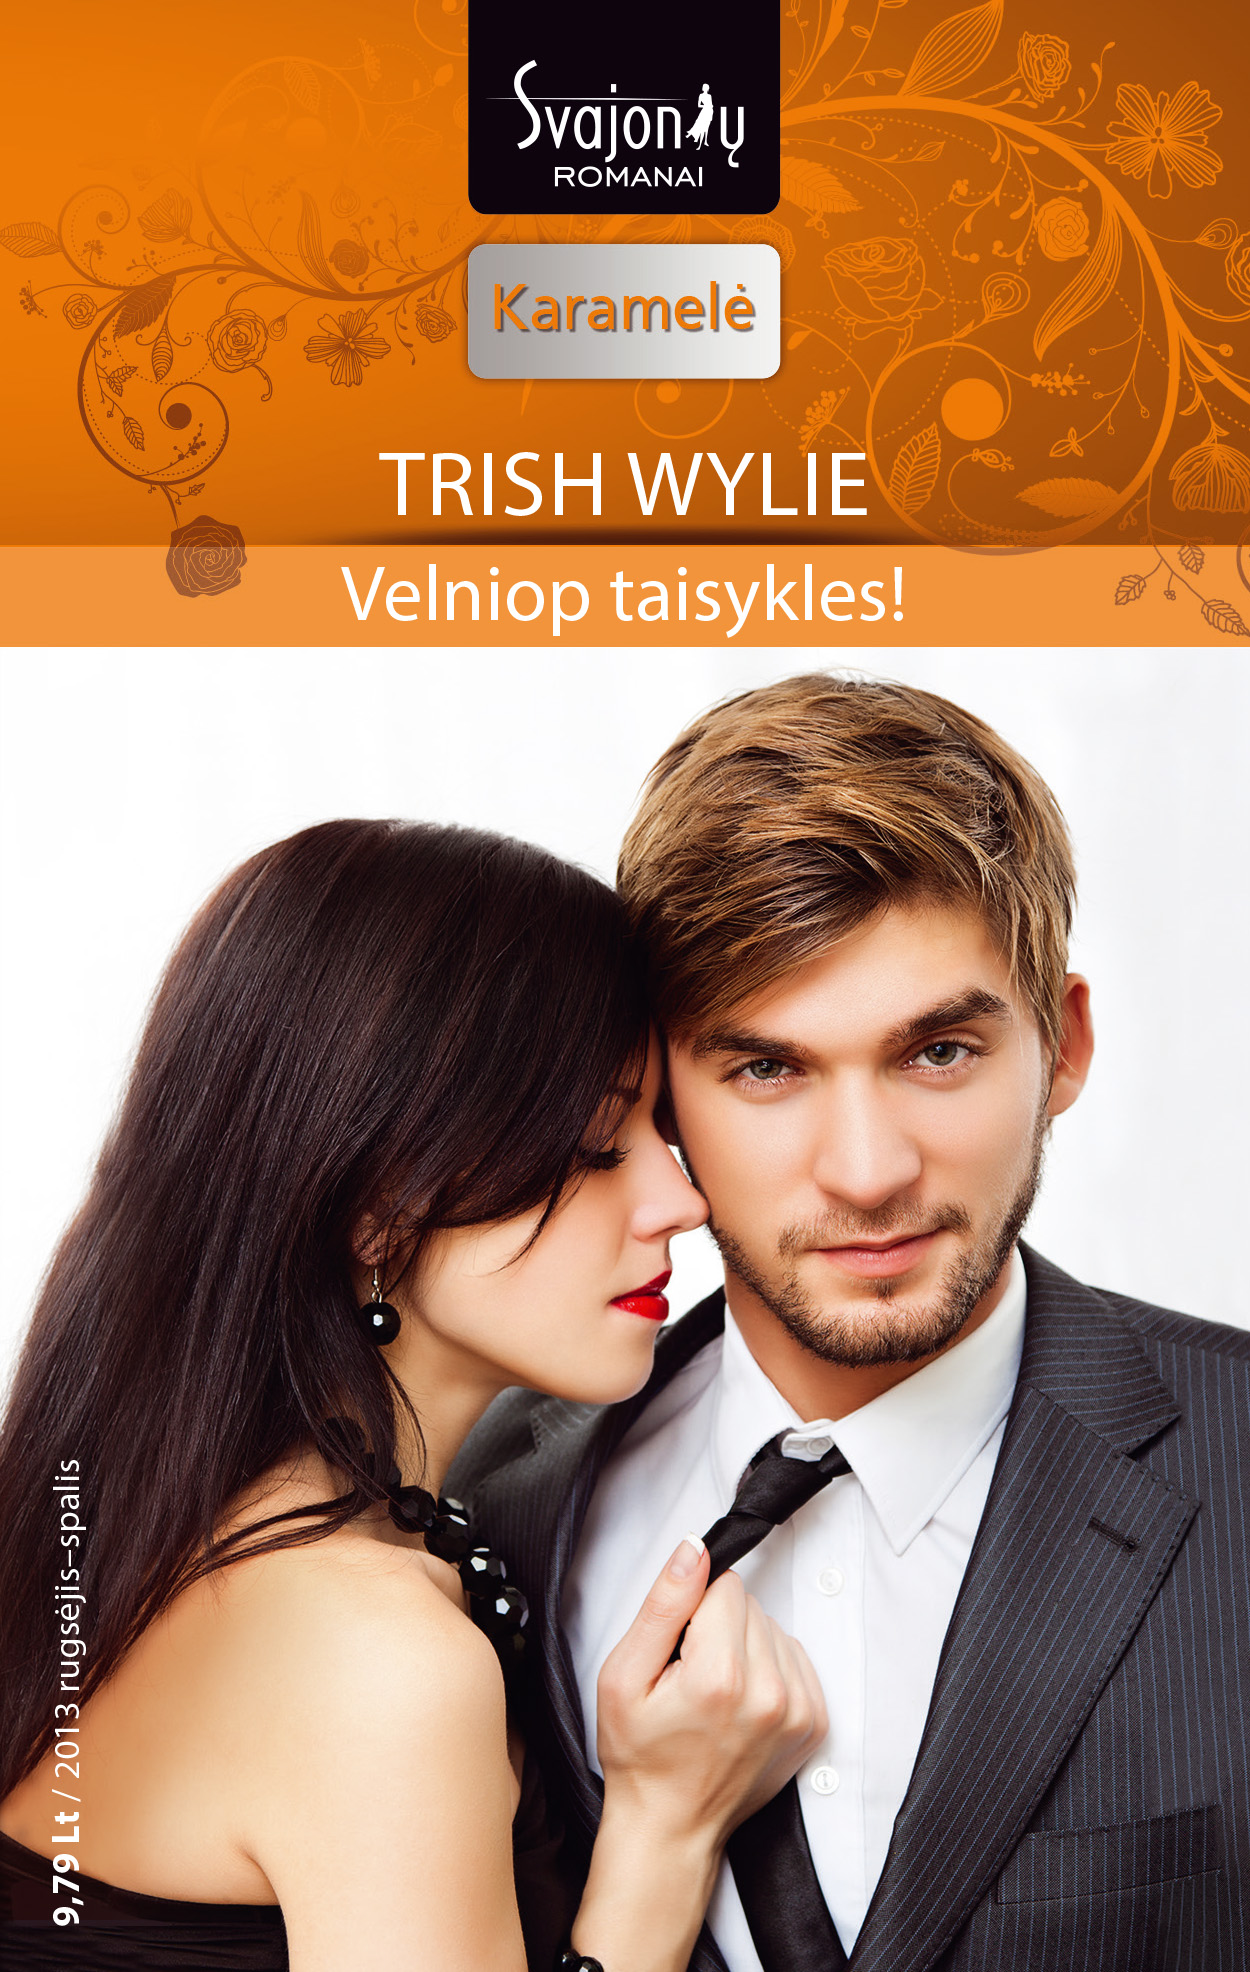 Trish Wylie Velniop taisykles! trish wylie the bridal bet